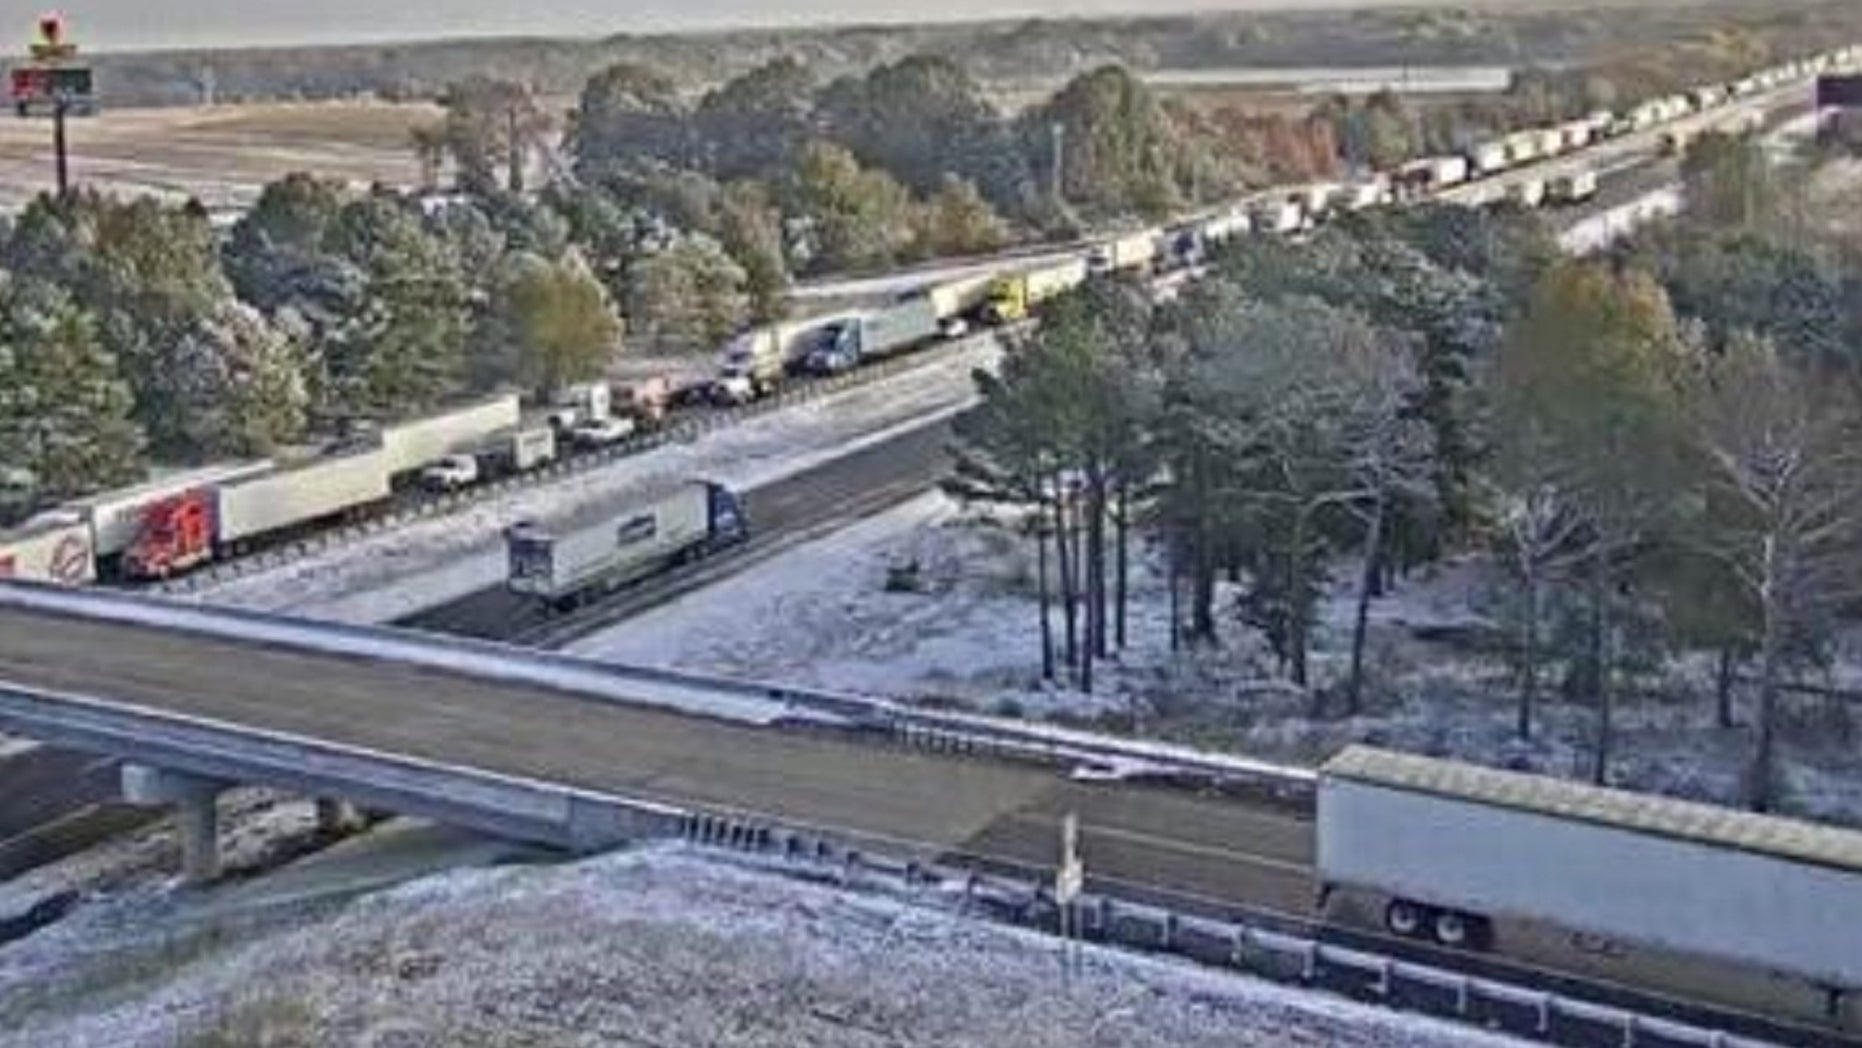 Traffic is shown stopped along Interstate 40 between the cities of Forrest City and Brinkley.